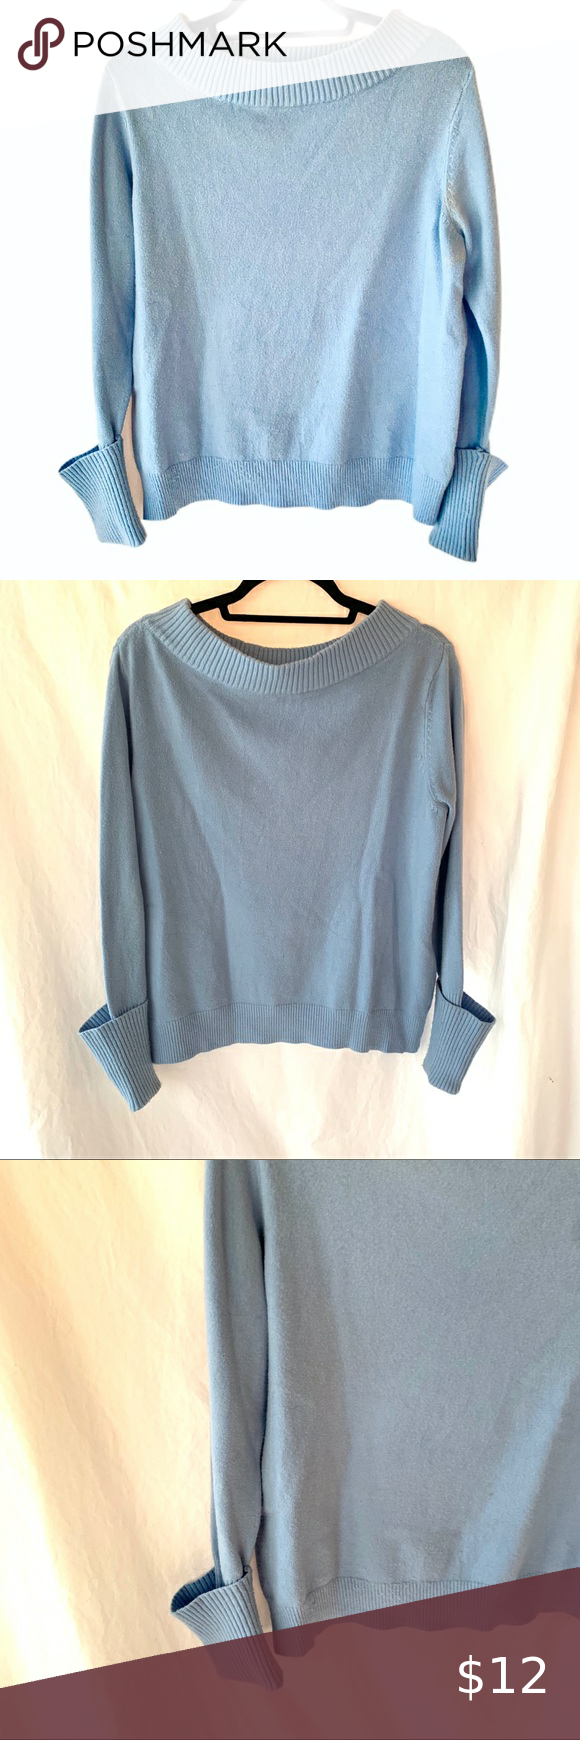 Sky Blue Sweater Sky Blue Sweater  Lightweight light blue sweater with scoop neck neckline. Ribbed cuffs and neckline. Great condition, fabric shows no pilling, pulls, stains or holes. Just a lovely blue charming sweater perfect for spring! Size medium  #sweater #vintage #ribbed #scoopneck #cuffs tags aeropostale aerie american eagle aeo vintage vtg 1980s 1990s forever 21 pacsun kendall kylie urban outfitters free people garage brandy melville urban renewal reformation zara abercrombie and fitch